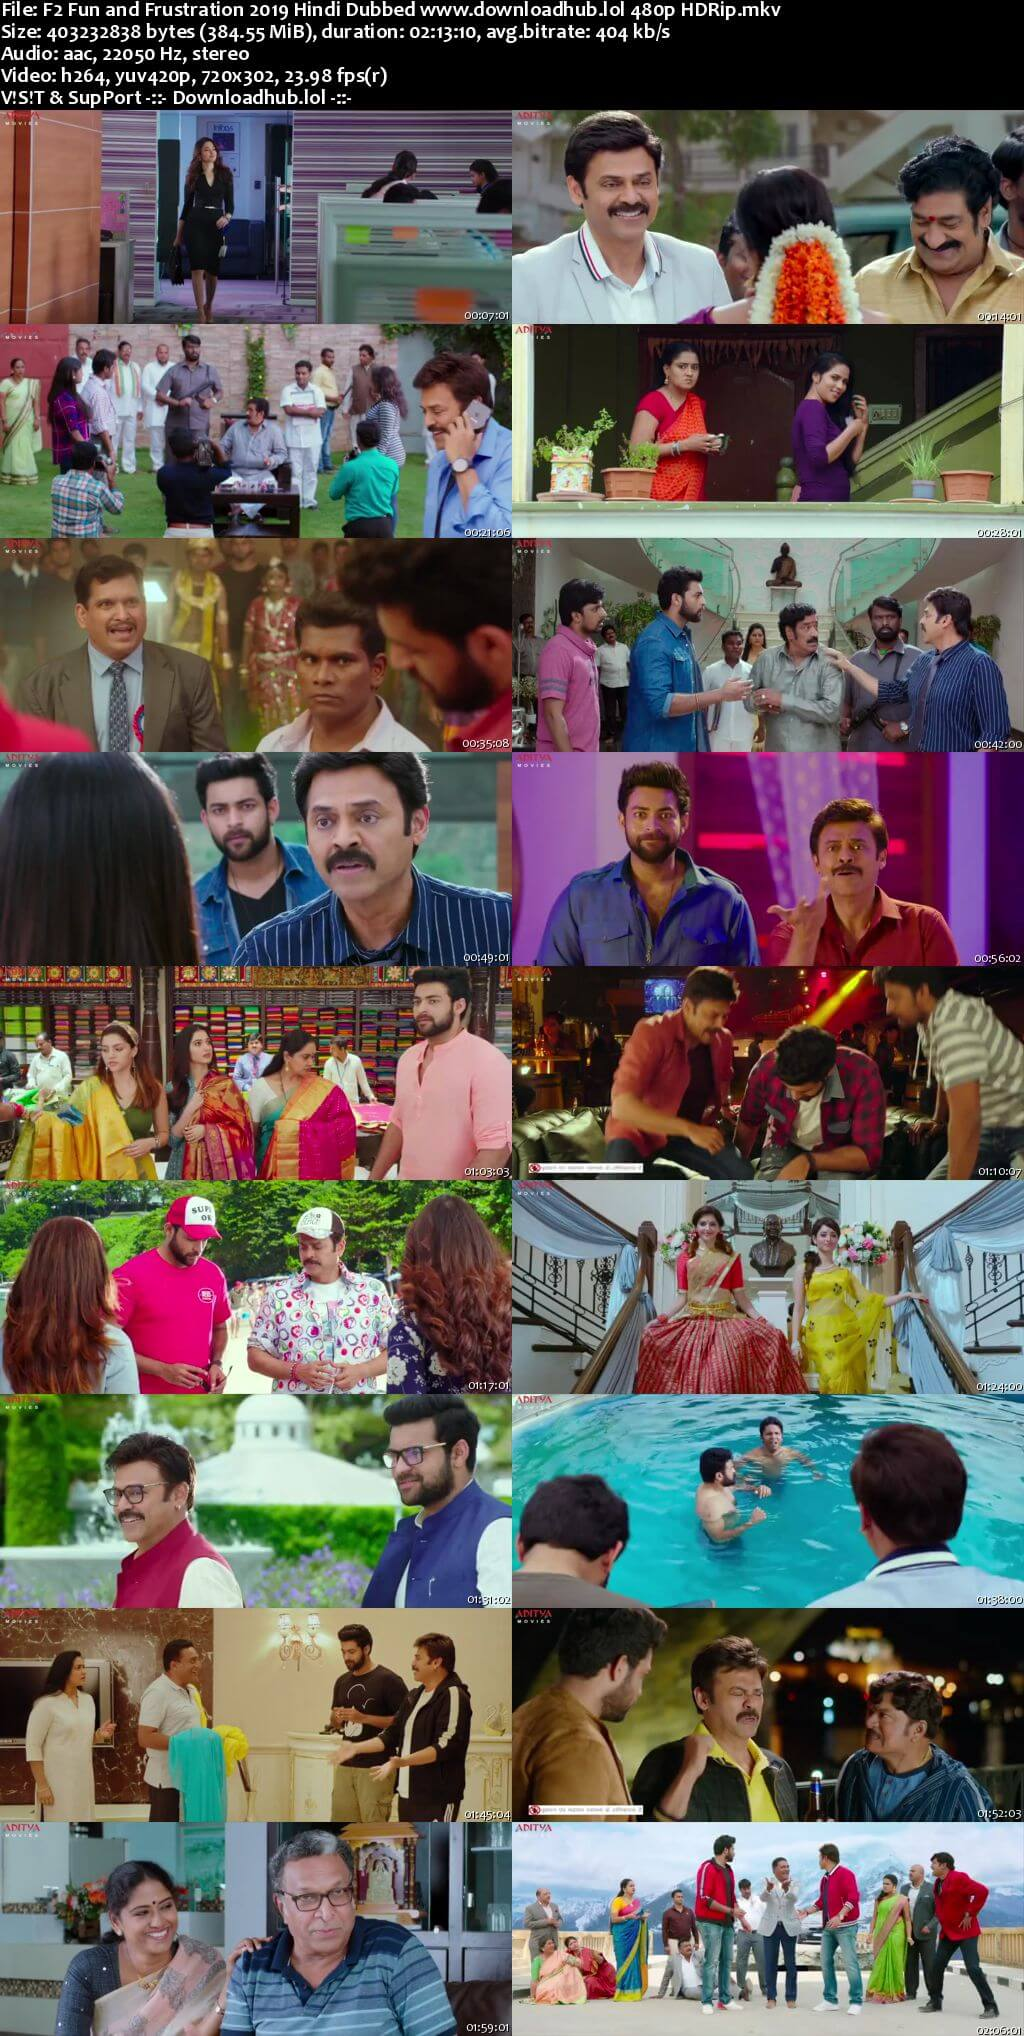 F2 Fun and Frustration 2019 Hindi Dubbed 350MB HDRip 480p